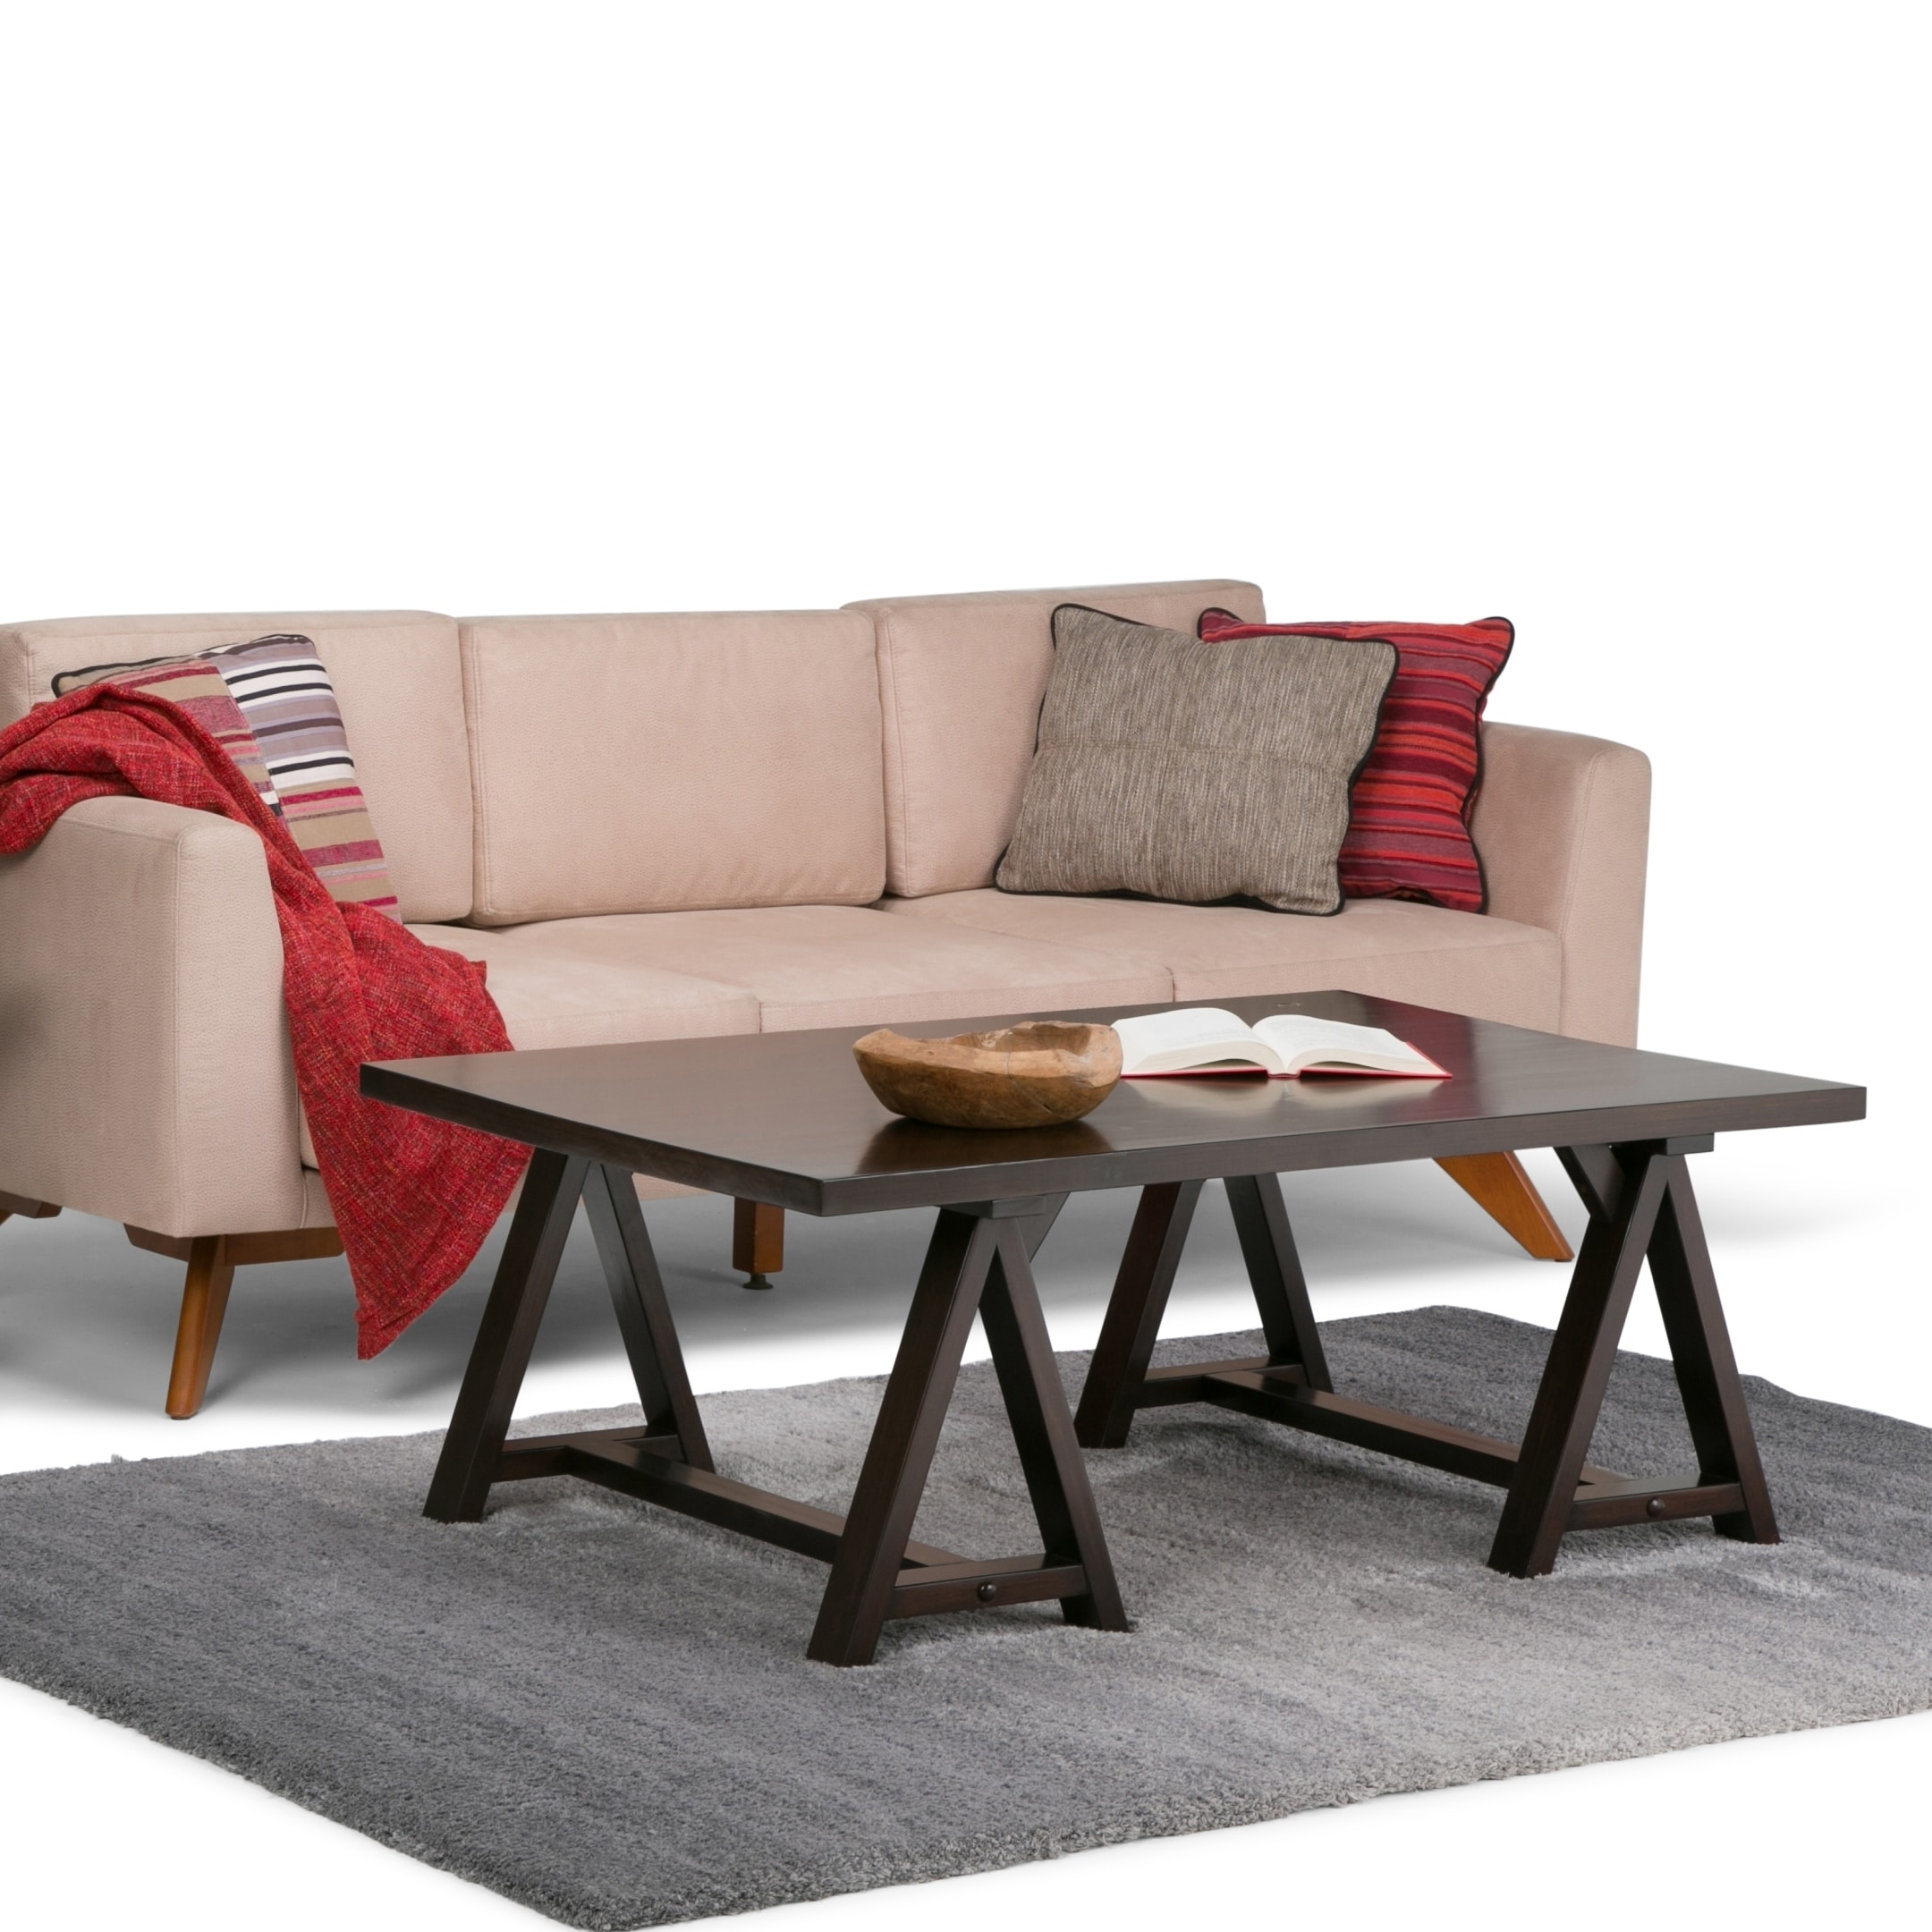 Picture of: Wyndenhall Hawkins Solid Wood 48 Inch Wide Rectangle Industrial Coffee Table 48 W X 32 D X 19 H Chestnut Walmart Com Walmart Com